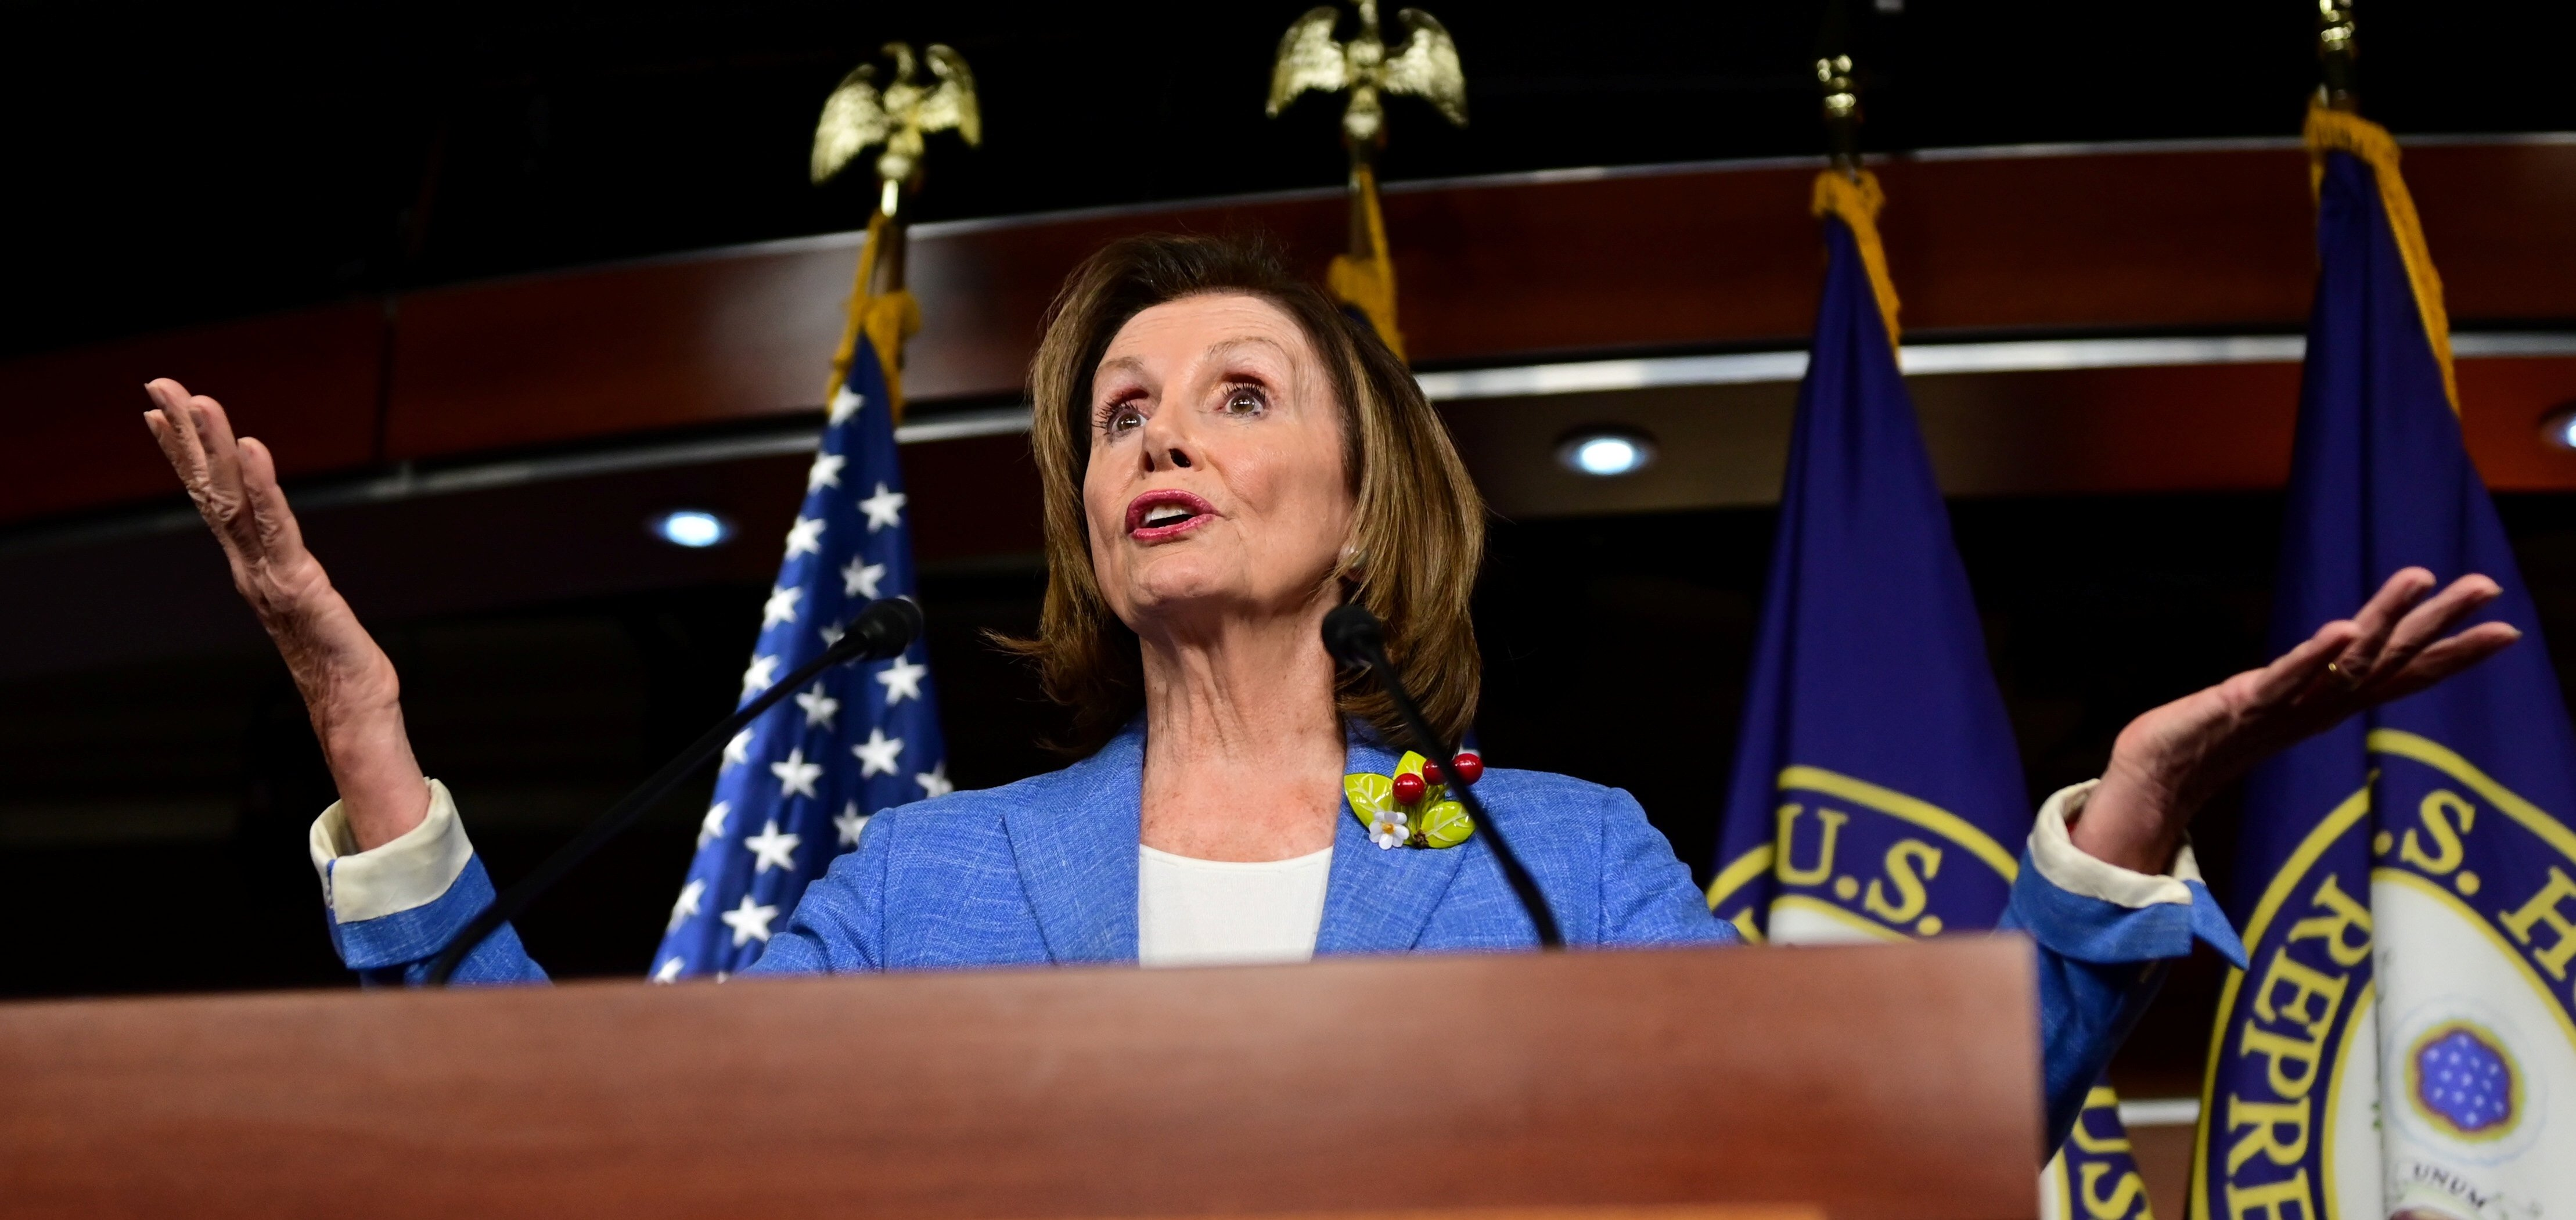 U.S. Speaker of the House Nancy Pelosi (D-CA) holds a weekly news conference with Capitol Hill reporters in Washington, U.S. July 26, 2019. REUTERS/Erin Scott